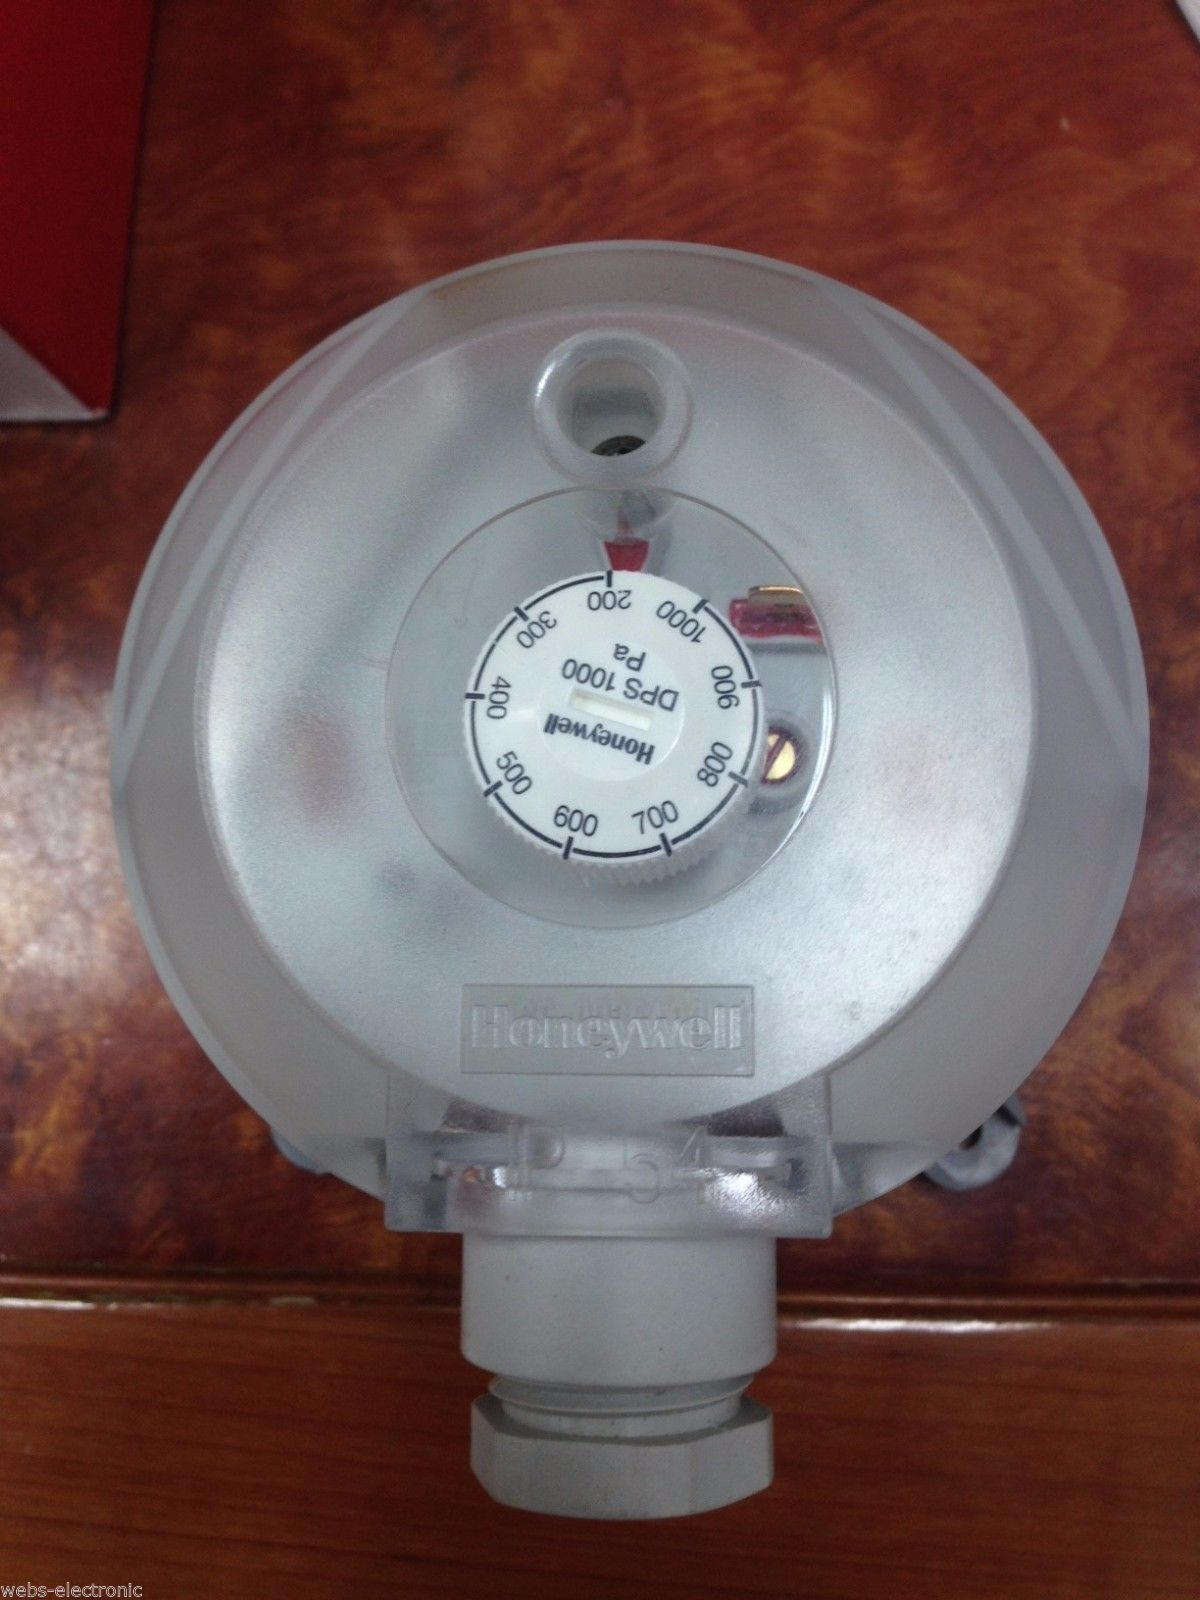 Lot-of-10-unit-honeywell-differential-pressure-switch-for-air-dps-dps-1000-pa